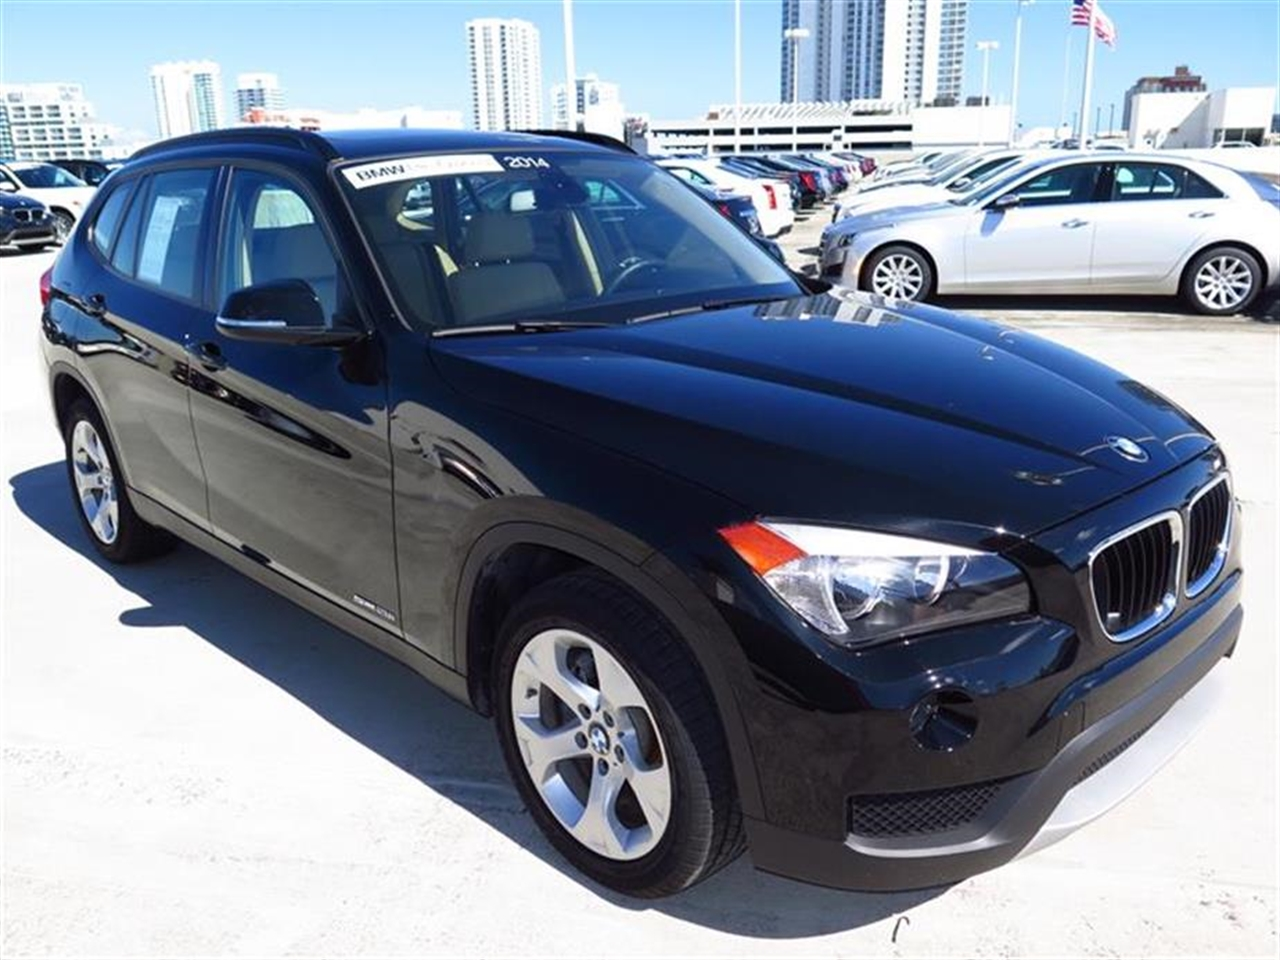 2014 BMW X1 RWD 4dr sDrive28i 10472 miles 2 Seatback Storage Pockets 3 12V DC Power Outlets LEAT